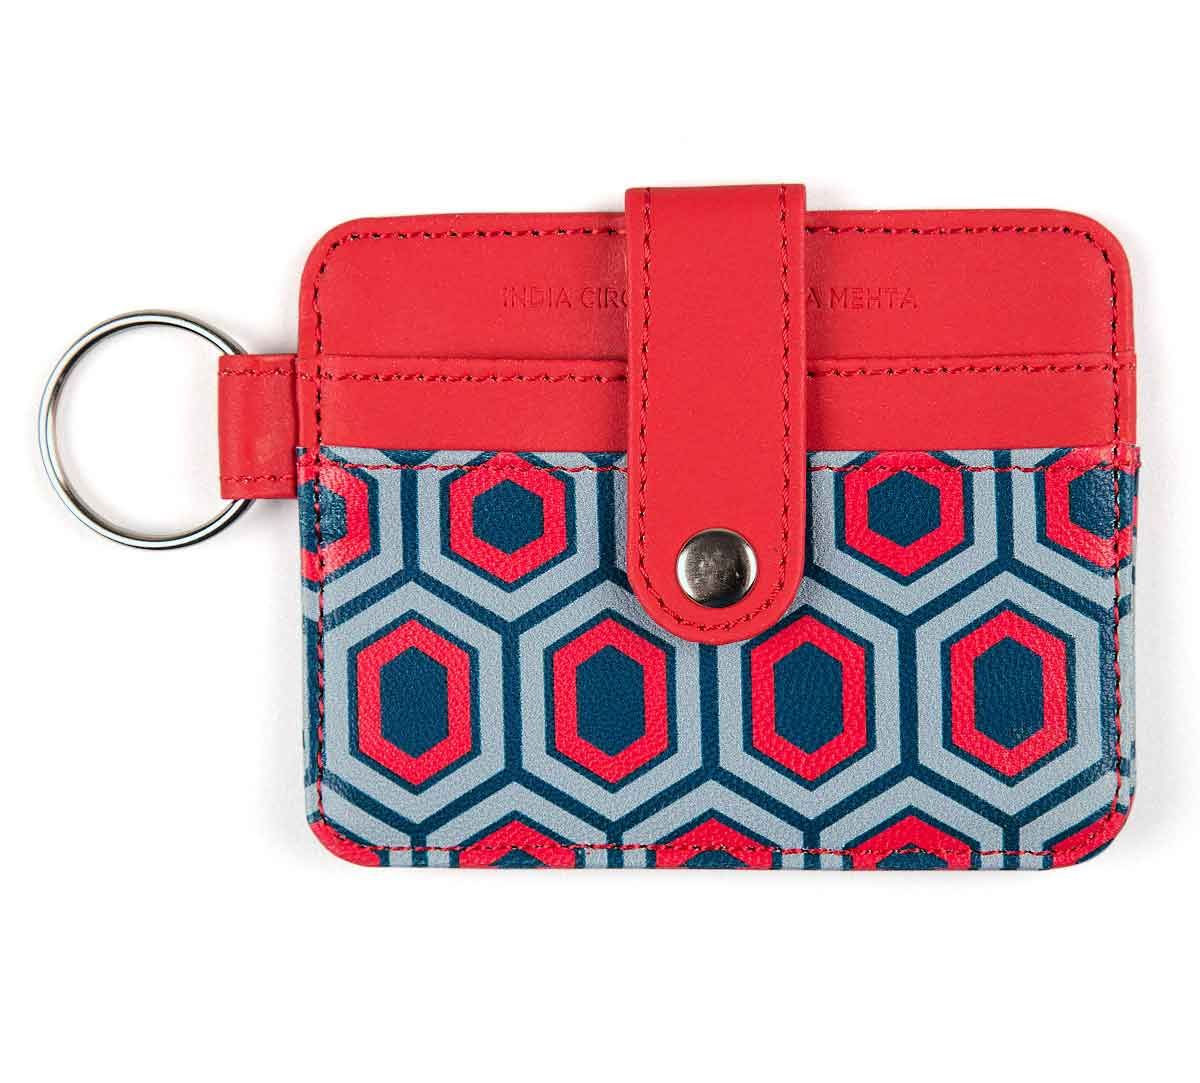 India Circus Prismatic Hexagons Keychain Card Holder